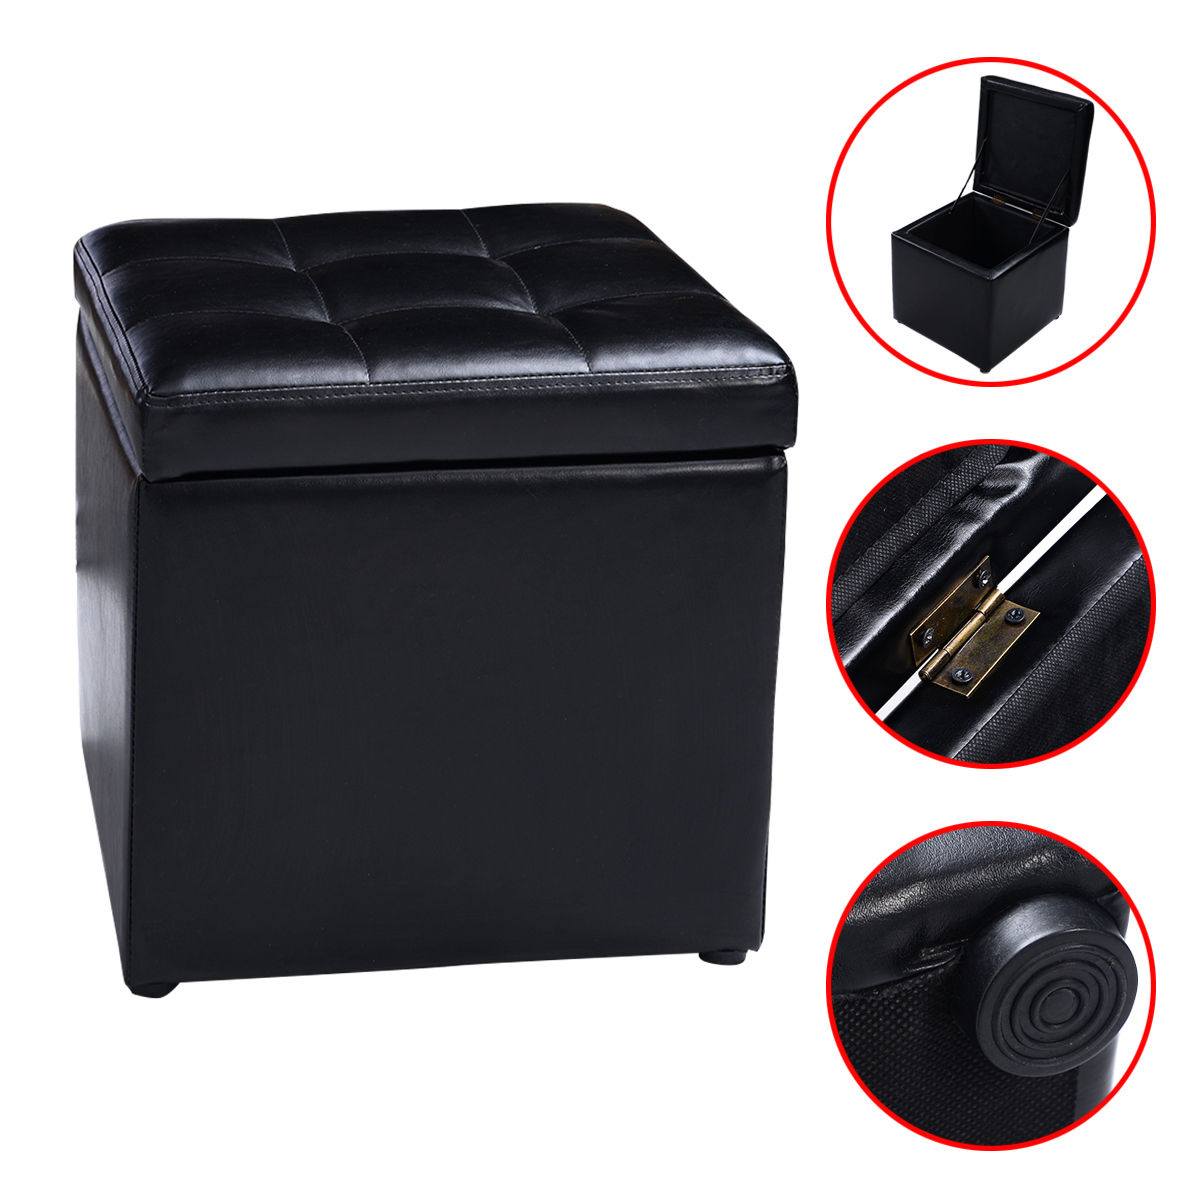 Costway Cube Ottoman Pouffe Storage Box Lounge Seat Footstools with Hinge Top black by Costway